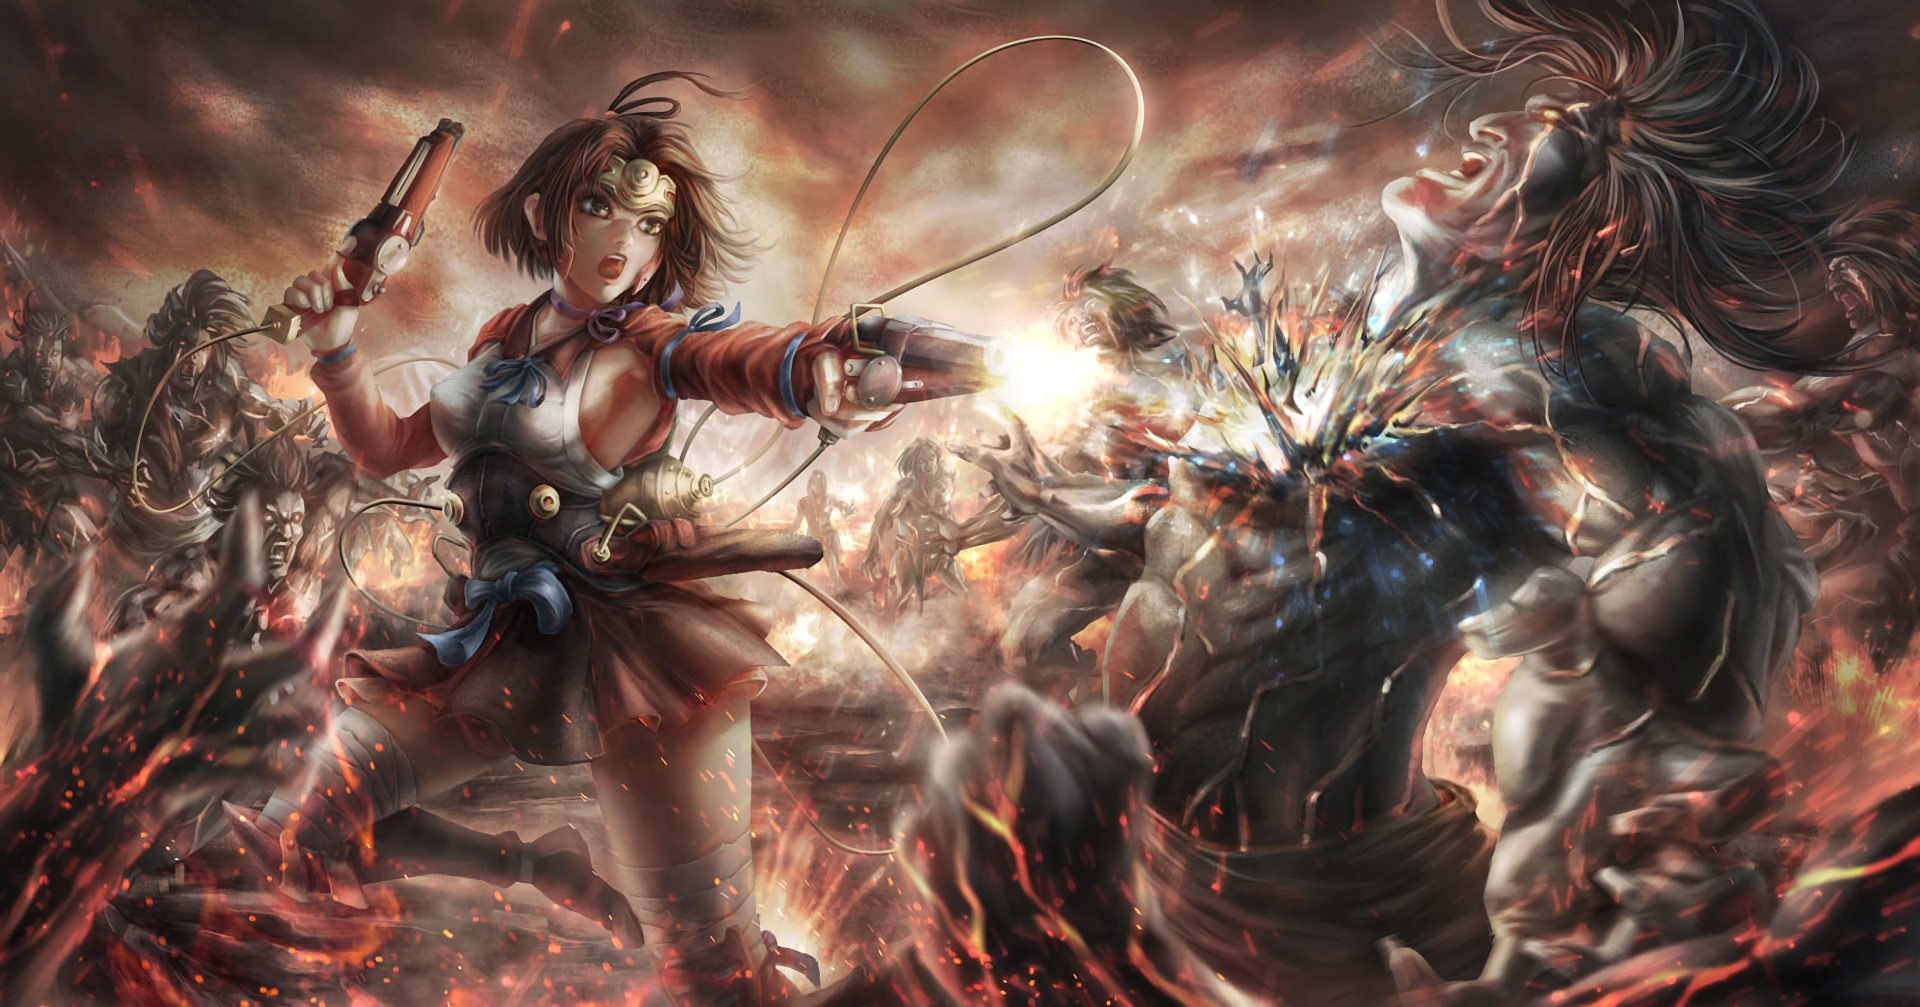 Kabaneri Of The Iron Fortress Wallpaper: Kabaneri Of The Iron Fortress Wallpaper And Background